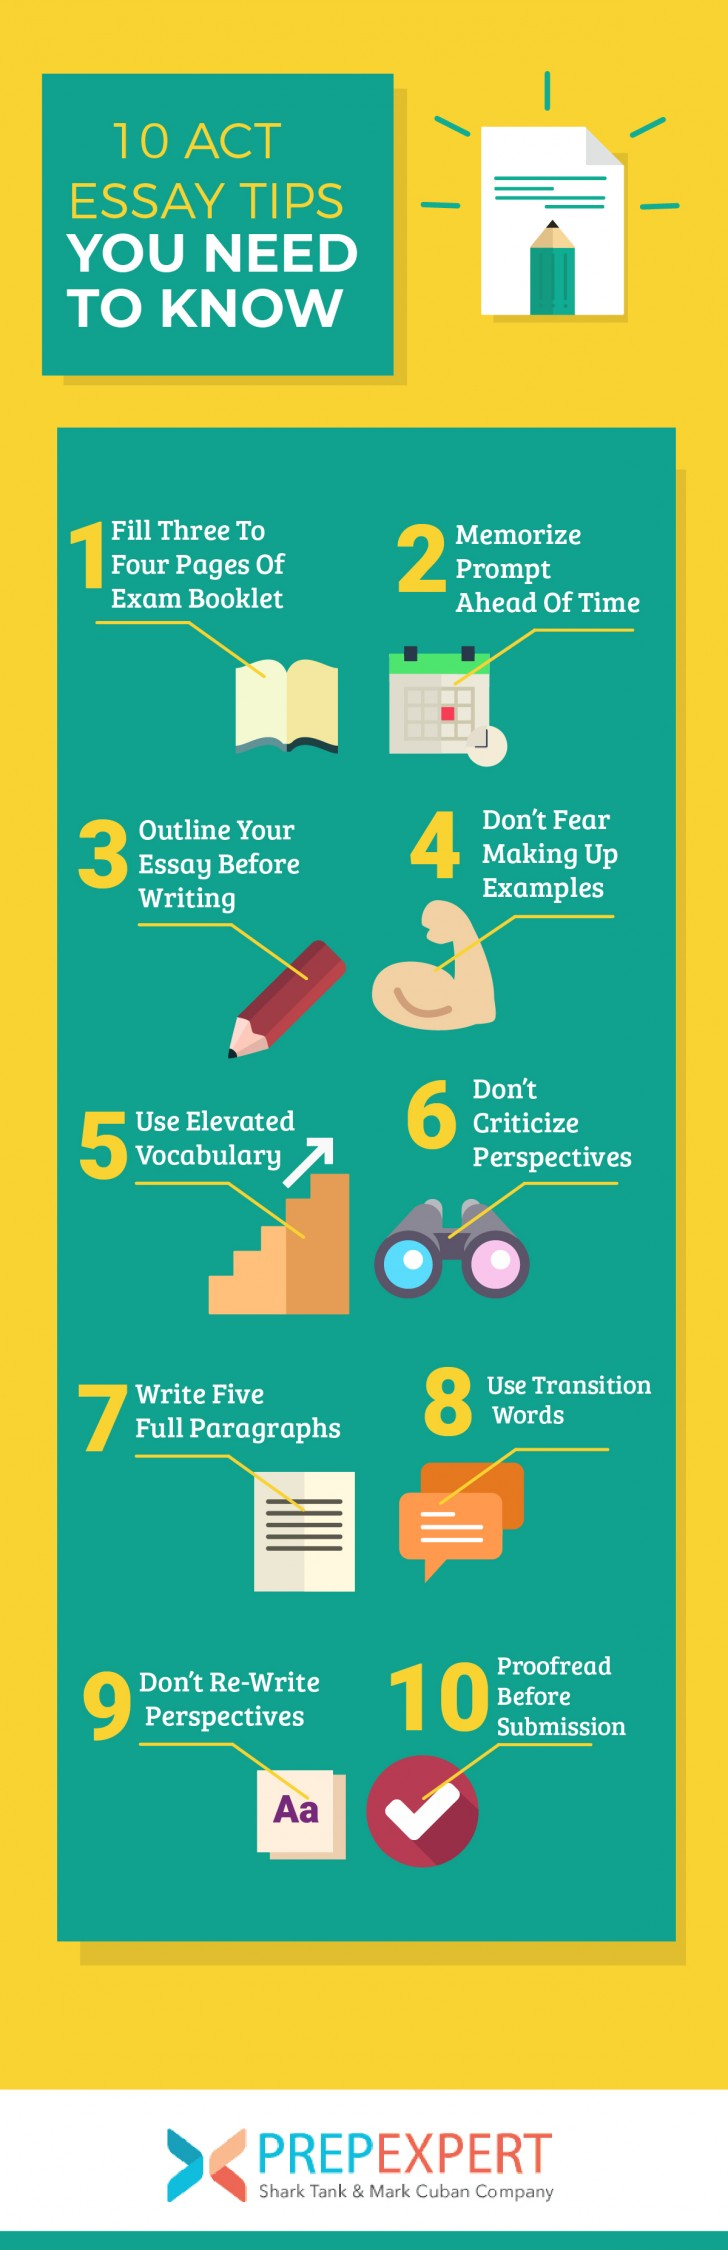 017 Essay Example Act 235585 Essayinfographics 052918 Fearsome Test Time Prompt 2016 728